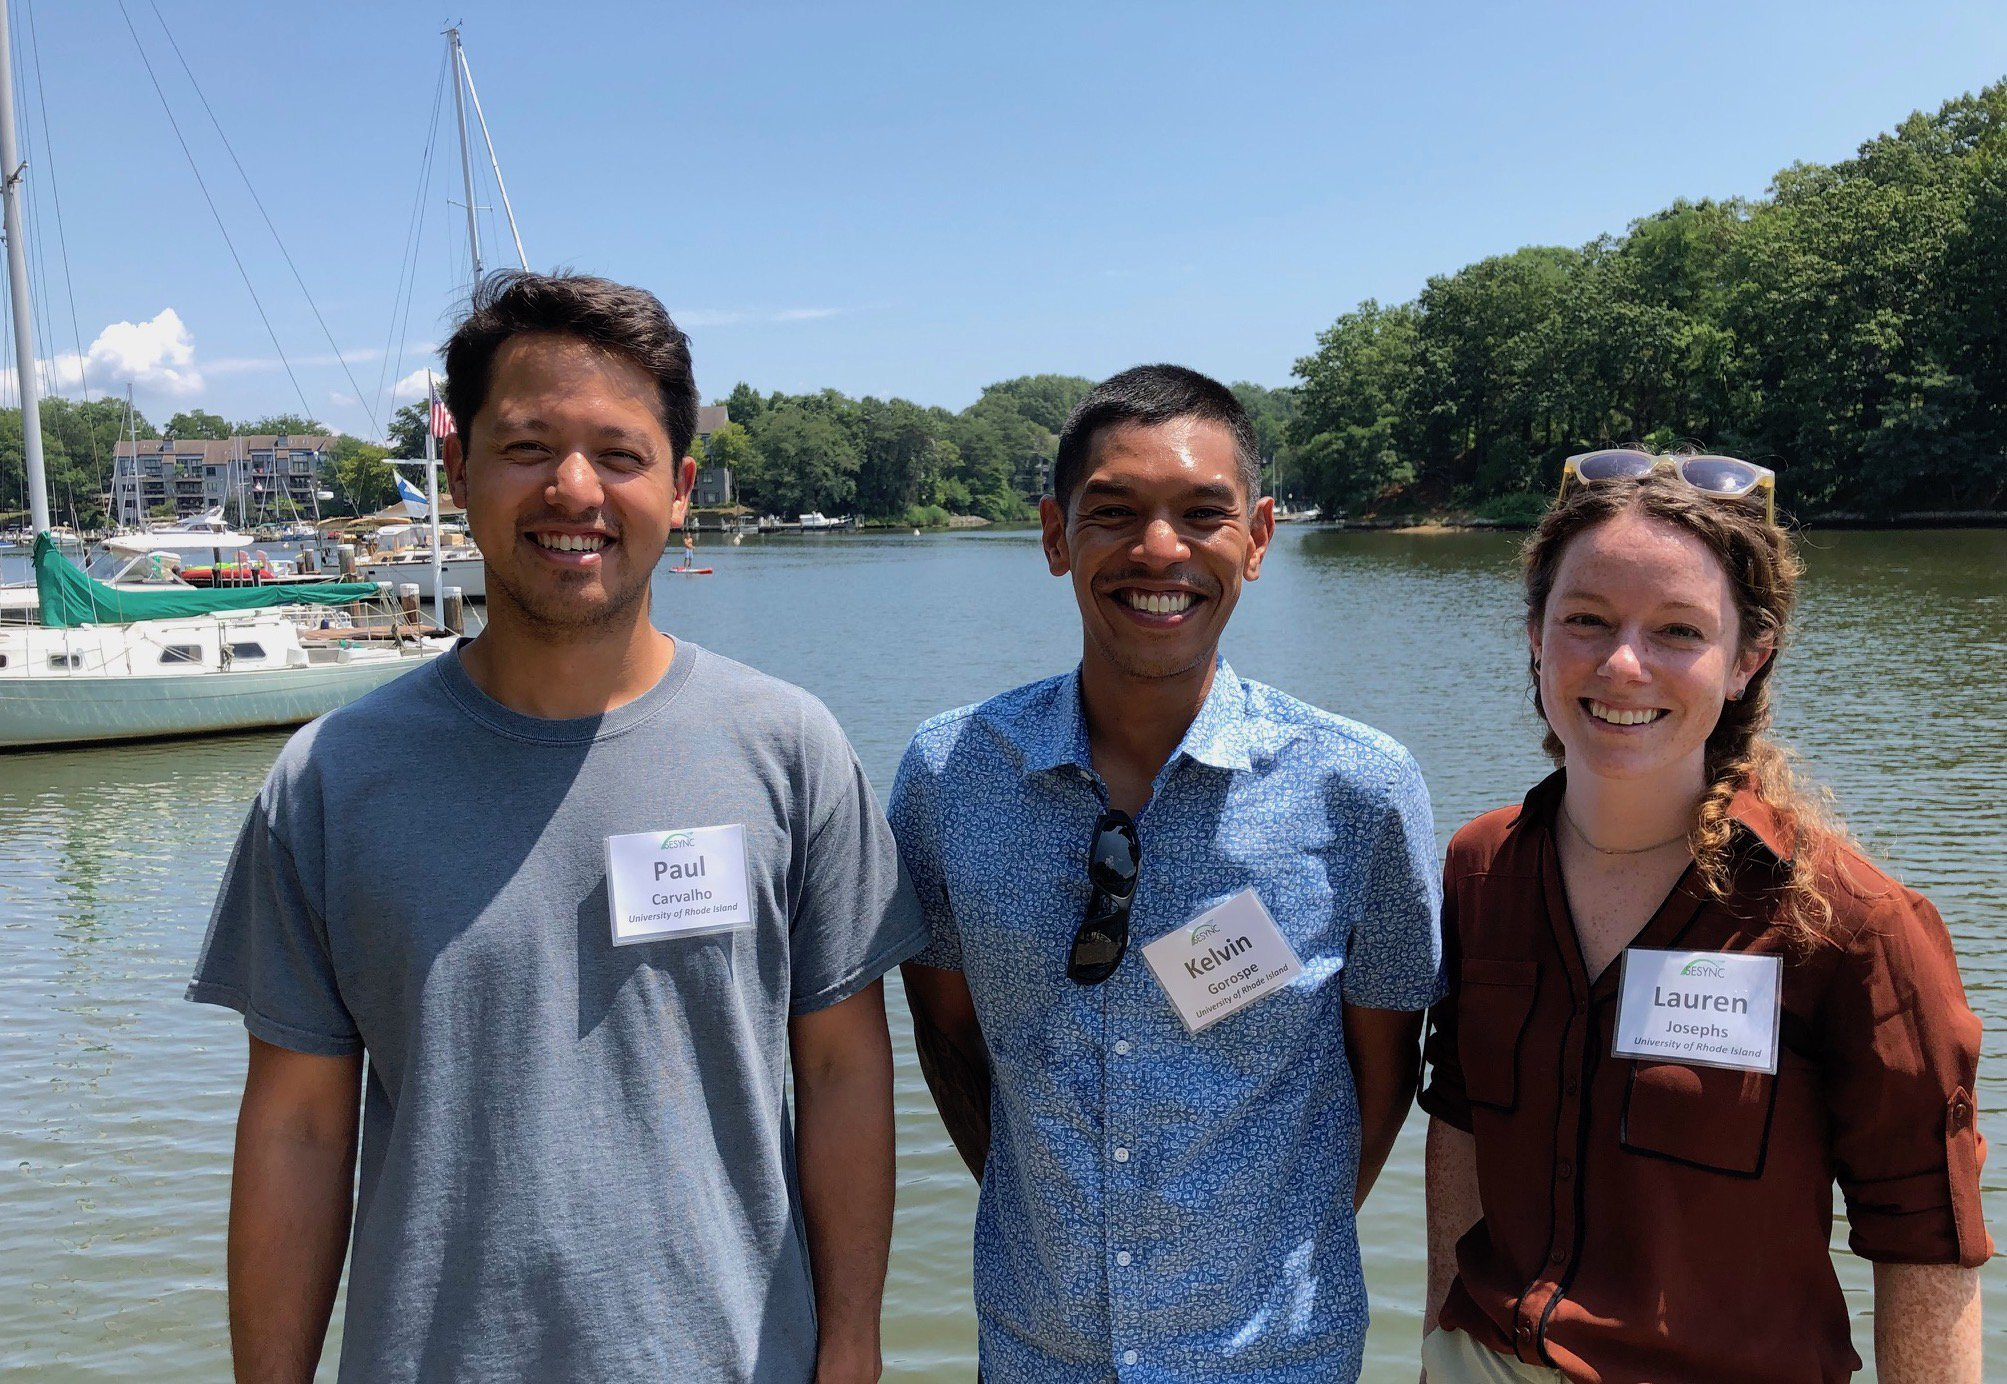 Paul, Kelvin, and Lauren on a fresh air break from work with their SESYNC group in Annapolis, MD.